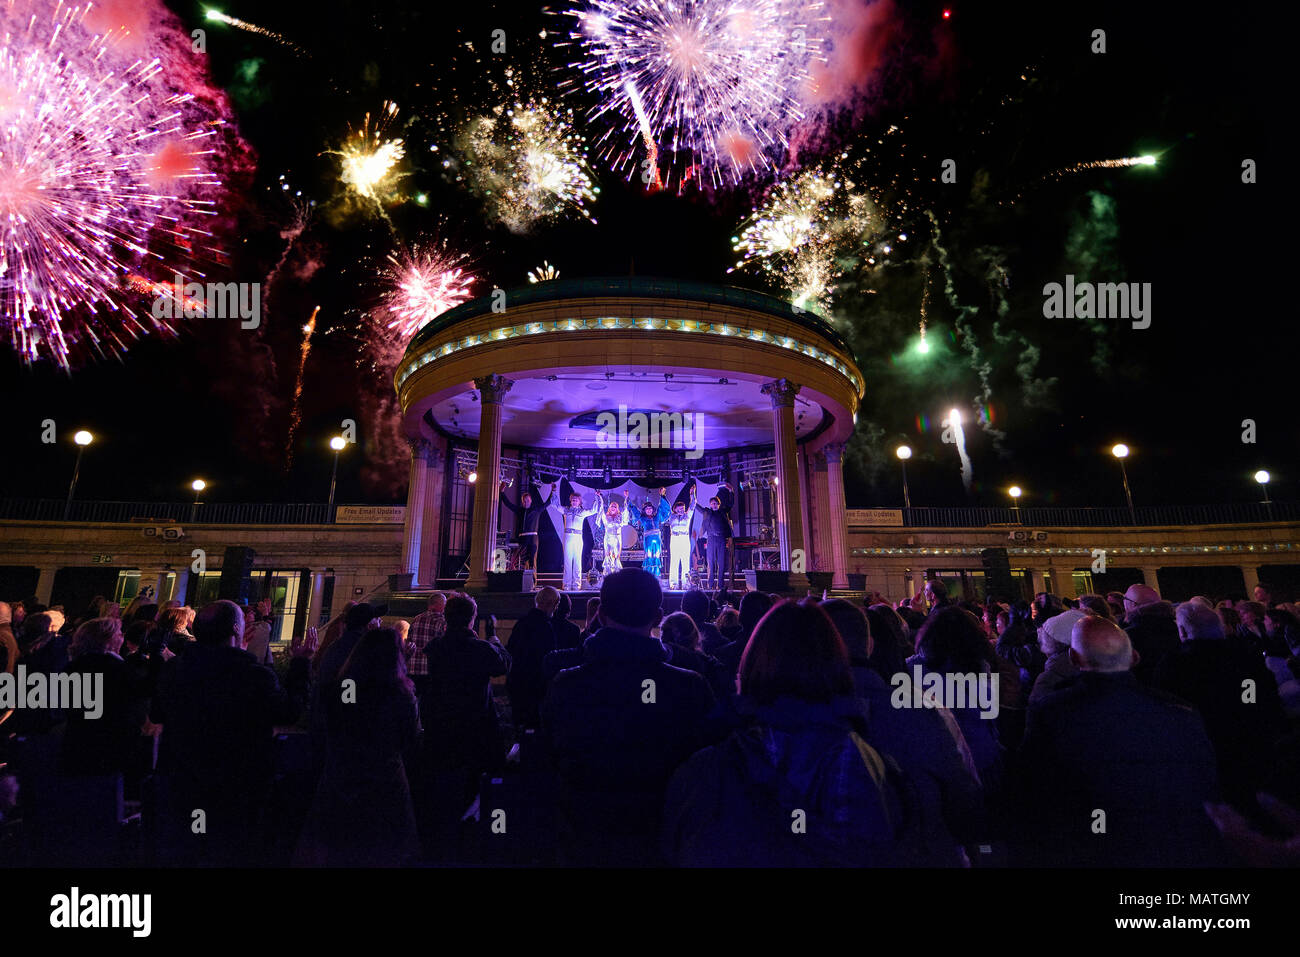 Abba tribute act at the bandstand, Eastbourne, East Sussex, England, UK - Stock Image